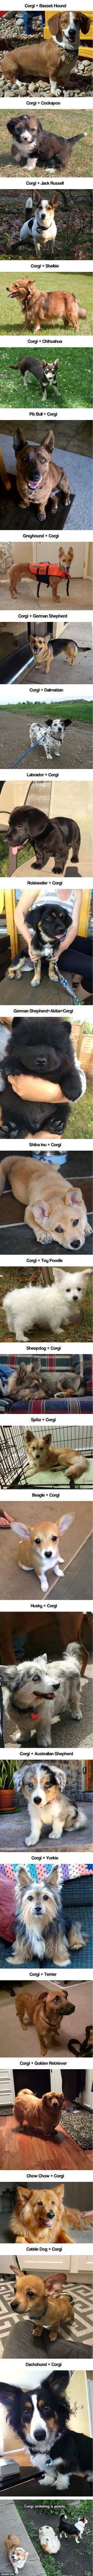 26 Corgeous Corgi Mixes That Are Fluffily Bootiful - 9GAG